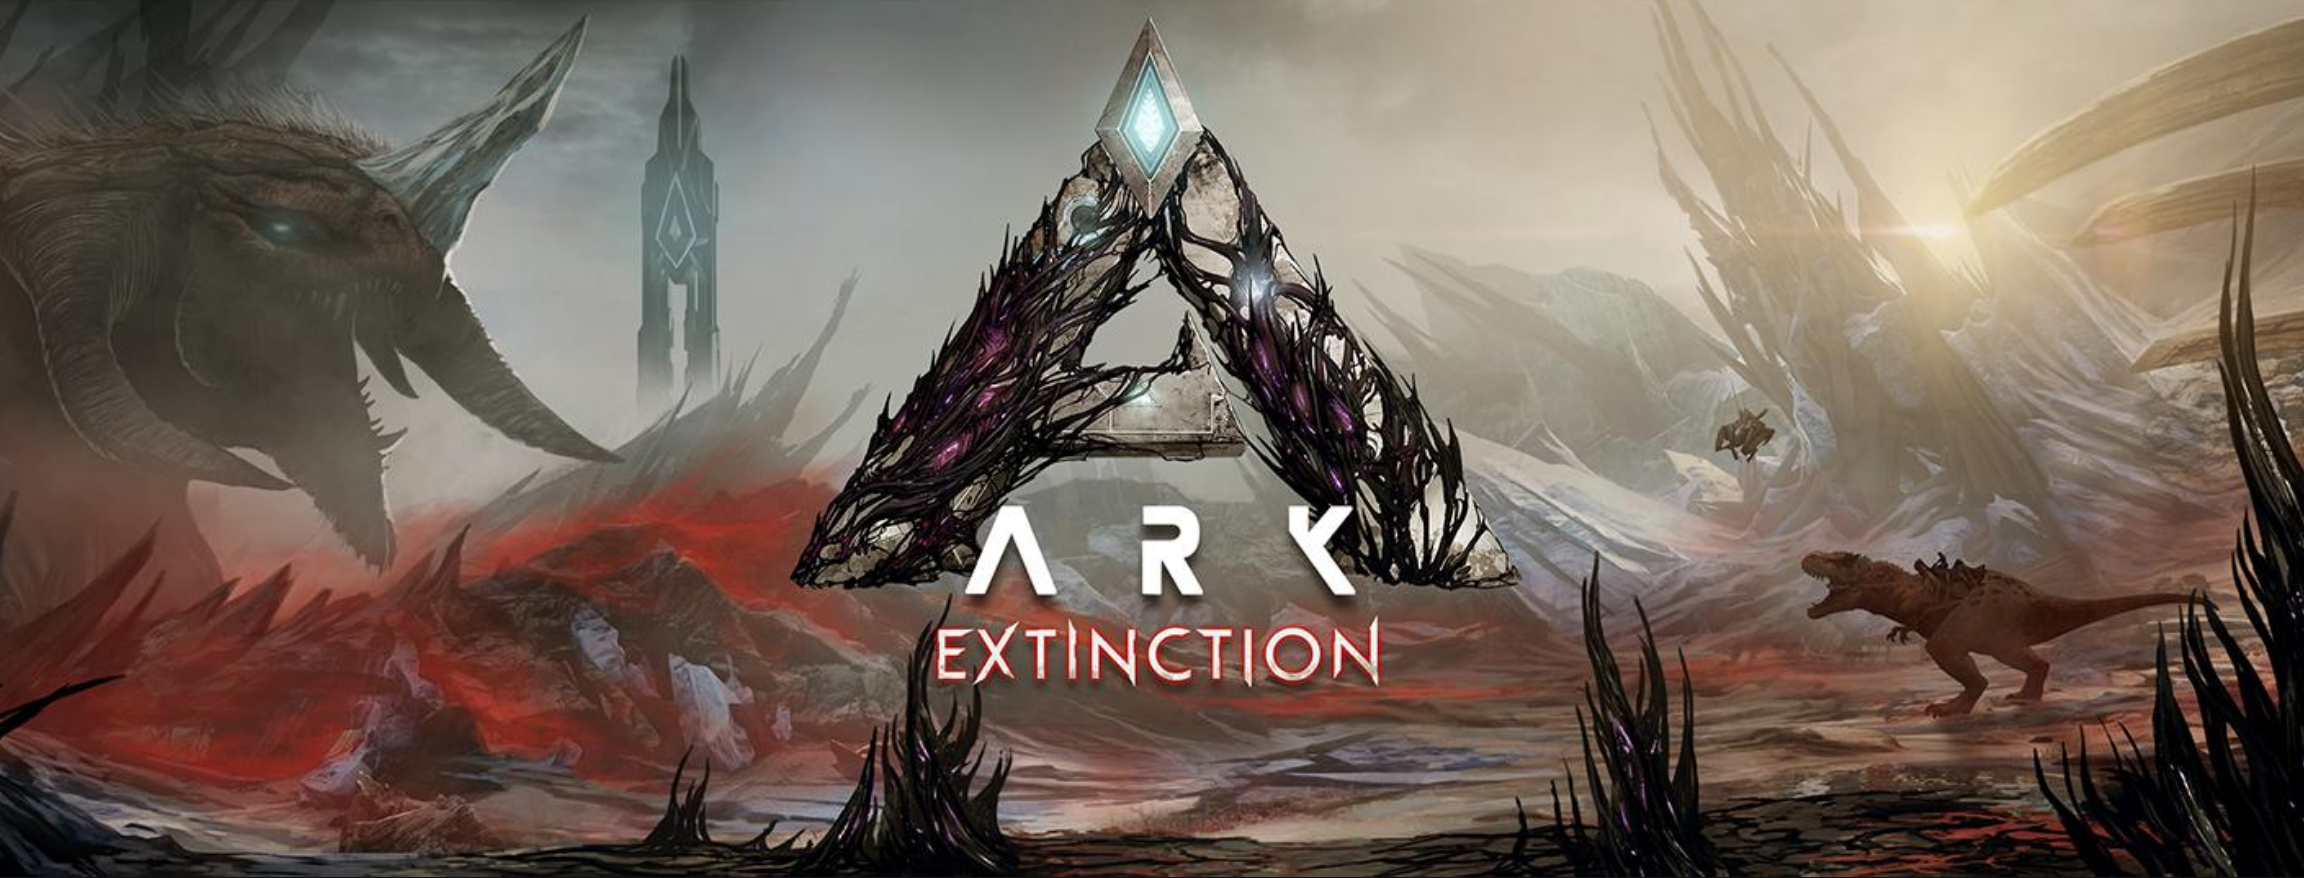 ARK: Extinction! Release announced – New Expansion Pack in Autumn!